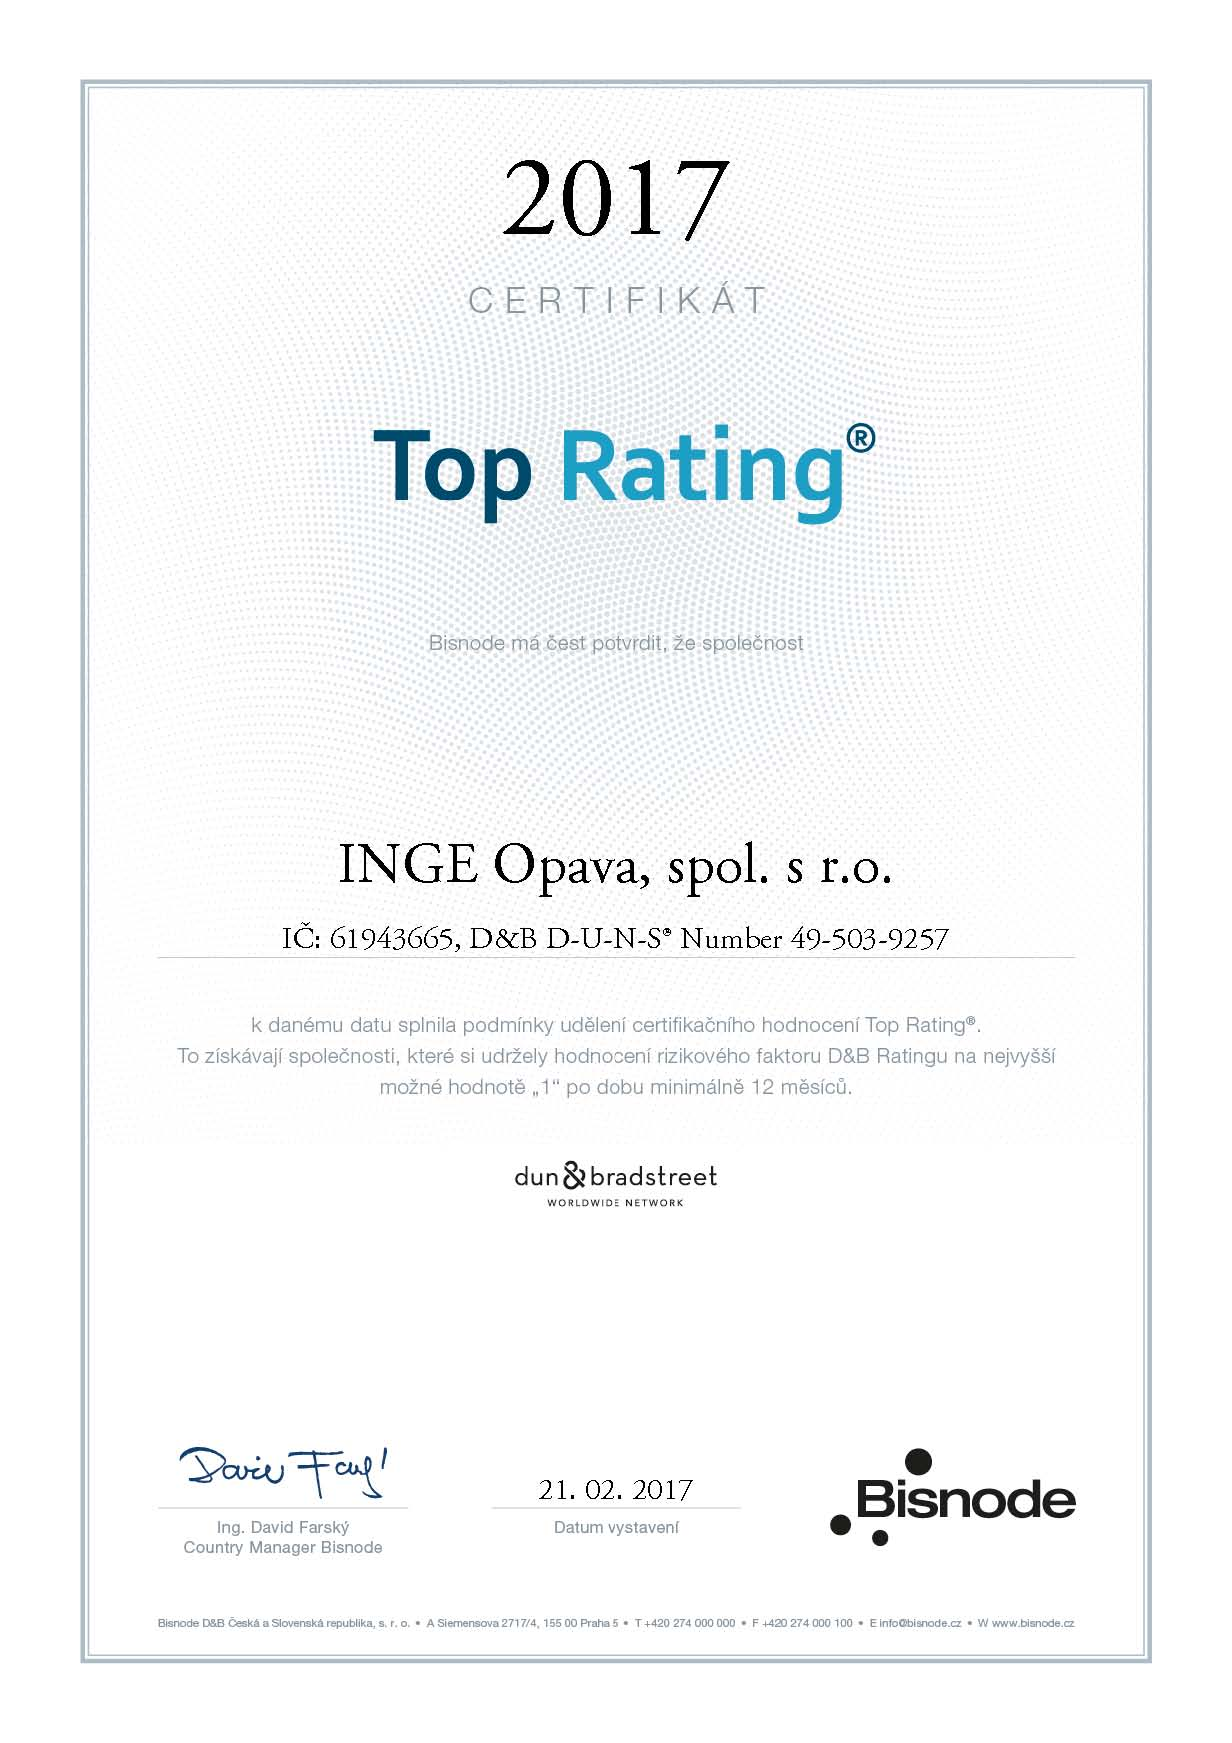 TOP RATING 2017 cert